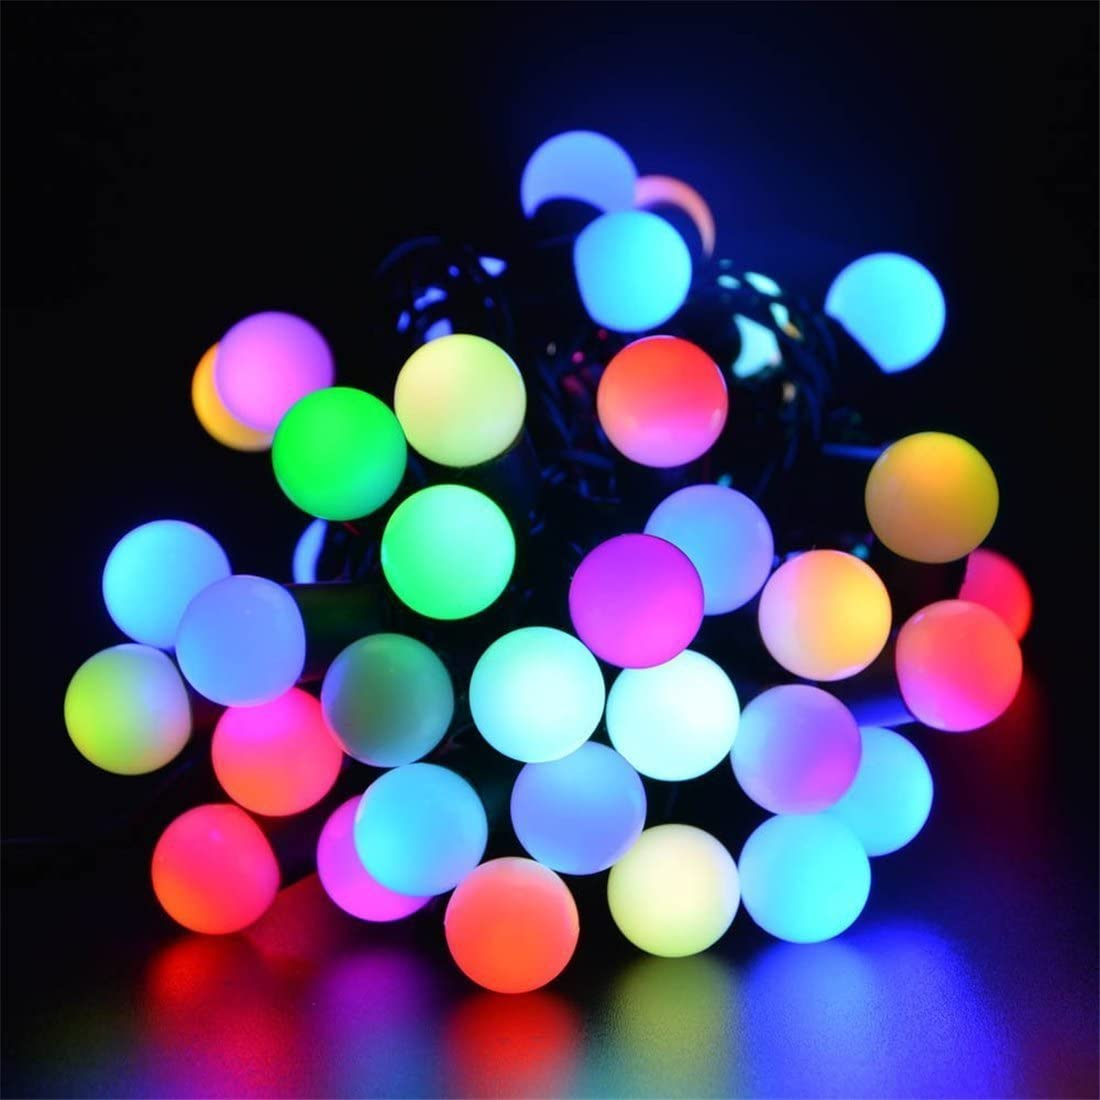 ELEOPTION Smartyard Led String Lights Solar Powered Outdoor Waterproof Night Light Decorative Lights for Outside Garden Camping Patio Party Holiday Wedding Ball, Colorful